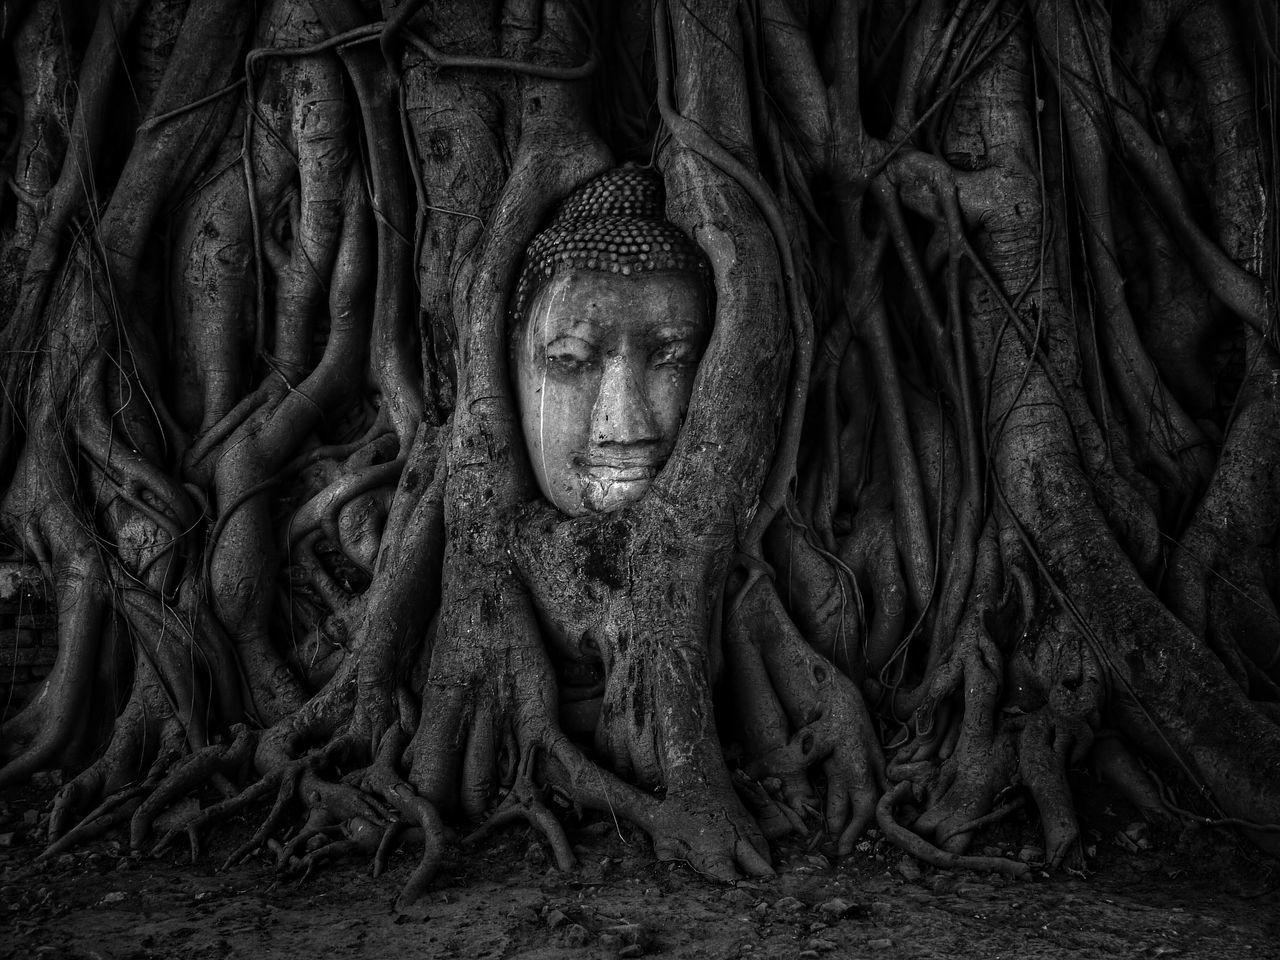 Black And White Art Buddha Buddha Statue Buddhism Unseen_Thailand Thailand Travel Tree Archaeological Sites Historic Ancient Face Nature Light And Shadow Trunk Tree Wonderful Old Vintage